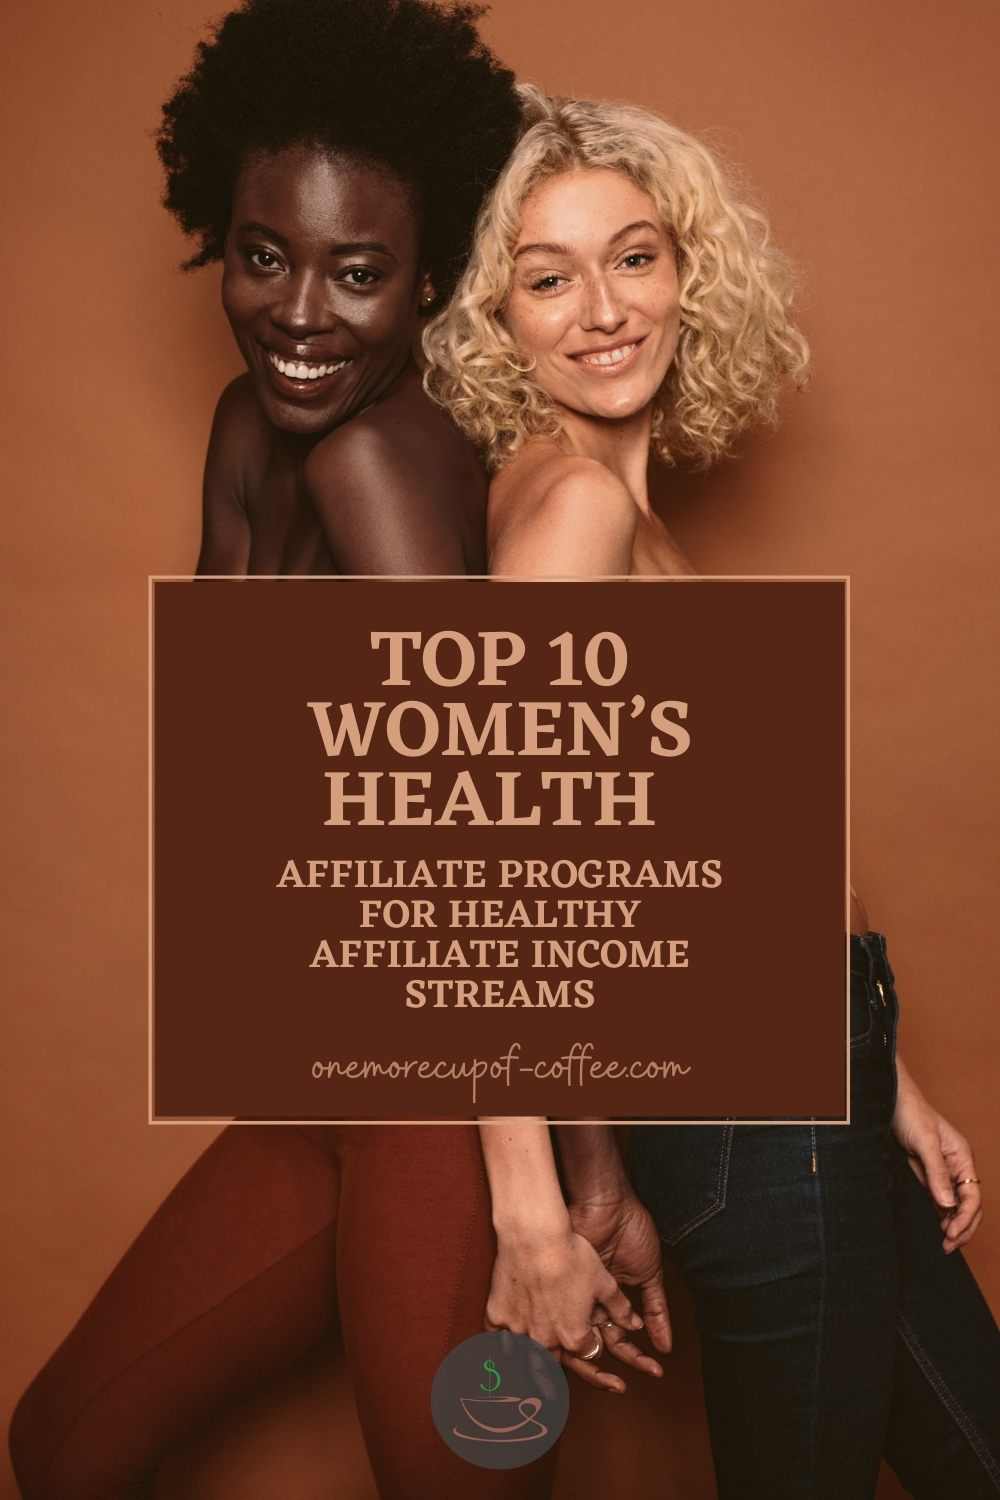 """a couple of smiling woman standing back to back, with text overlay """"Top 10 Women's Health Affiliate Programs For Healthy Affiliate Income Streams"""""""